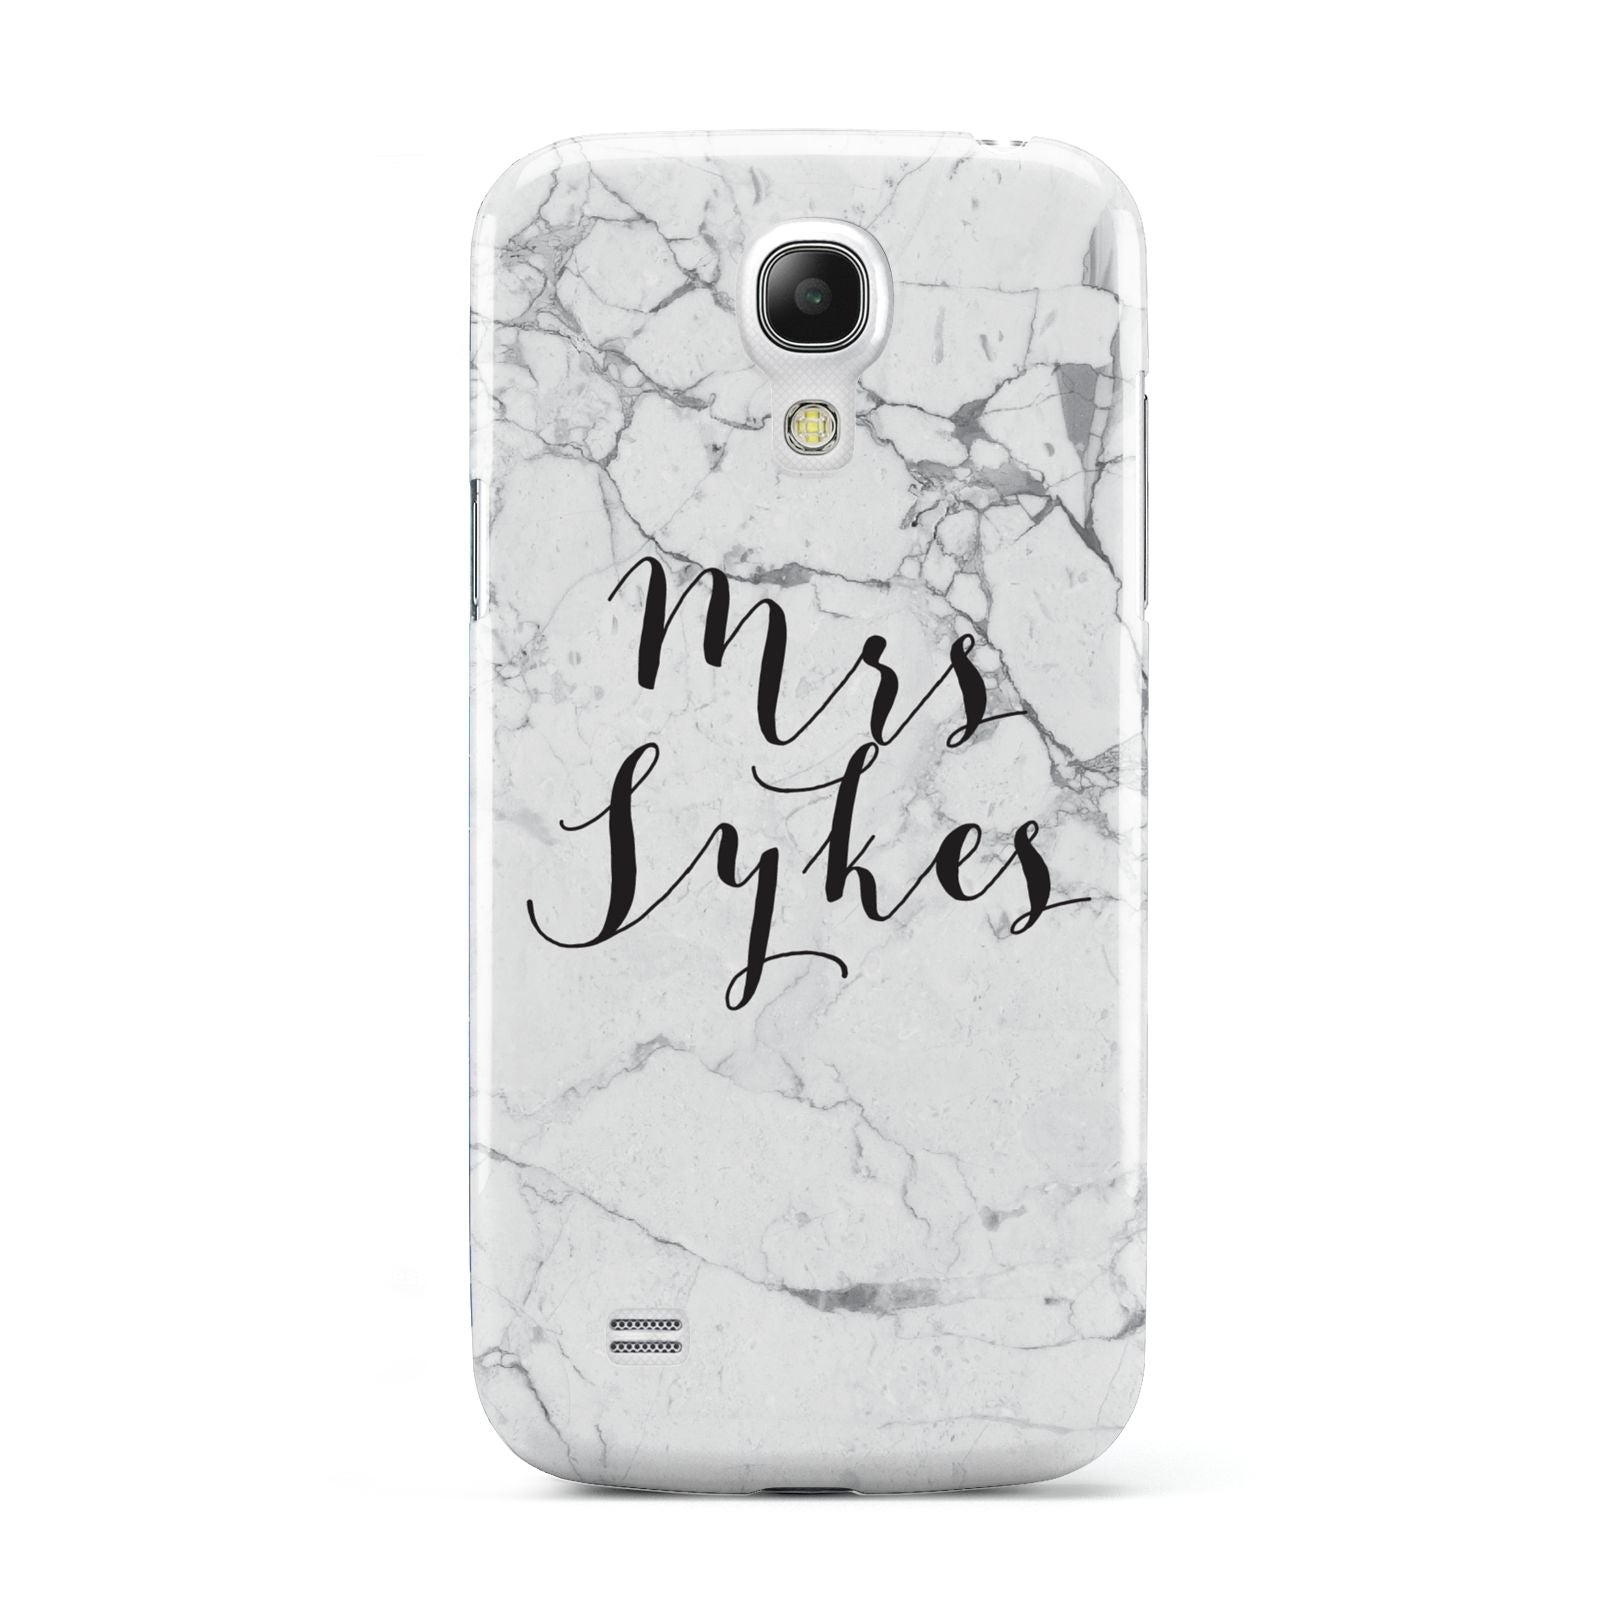 Surname Personalised Marble Samsung Galaxy S4 Mini Case